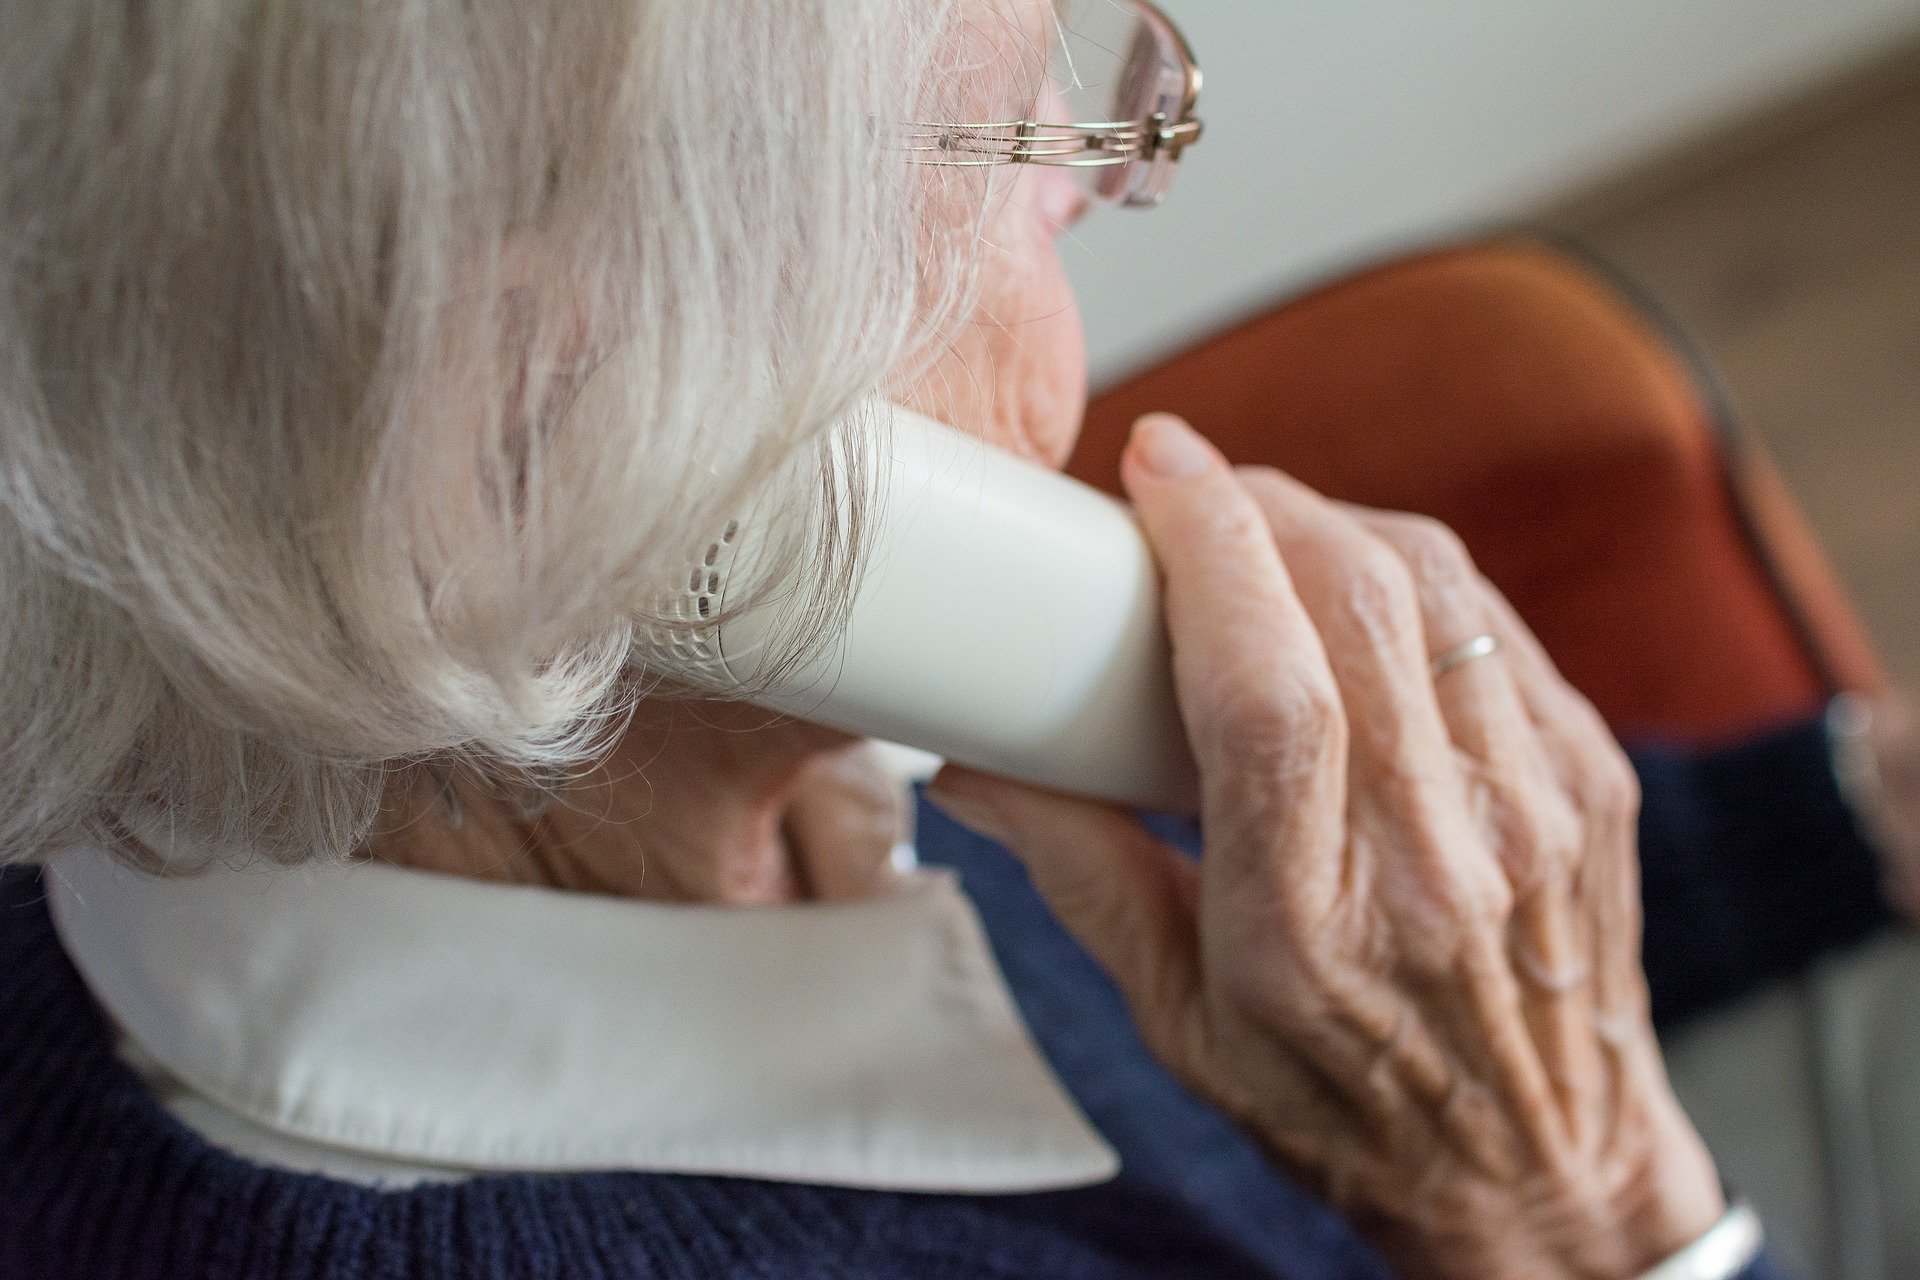 this is an image of an older woman holding a phone